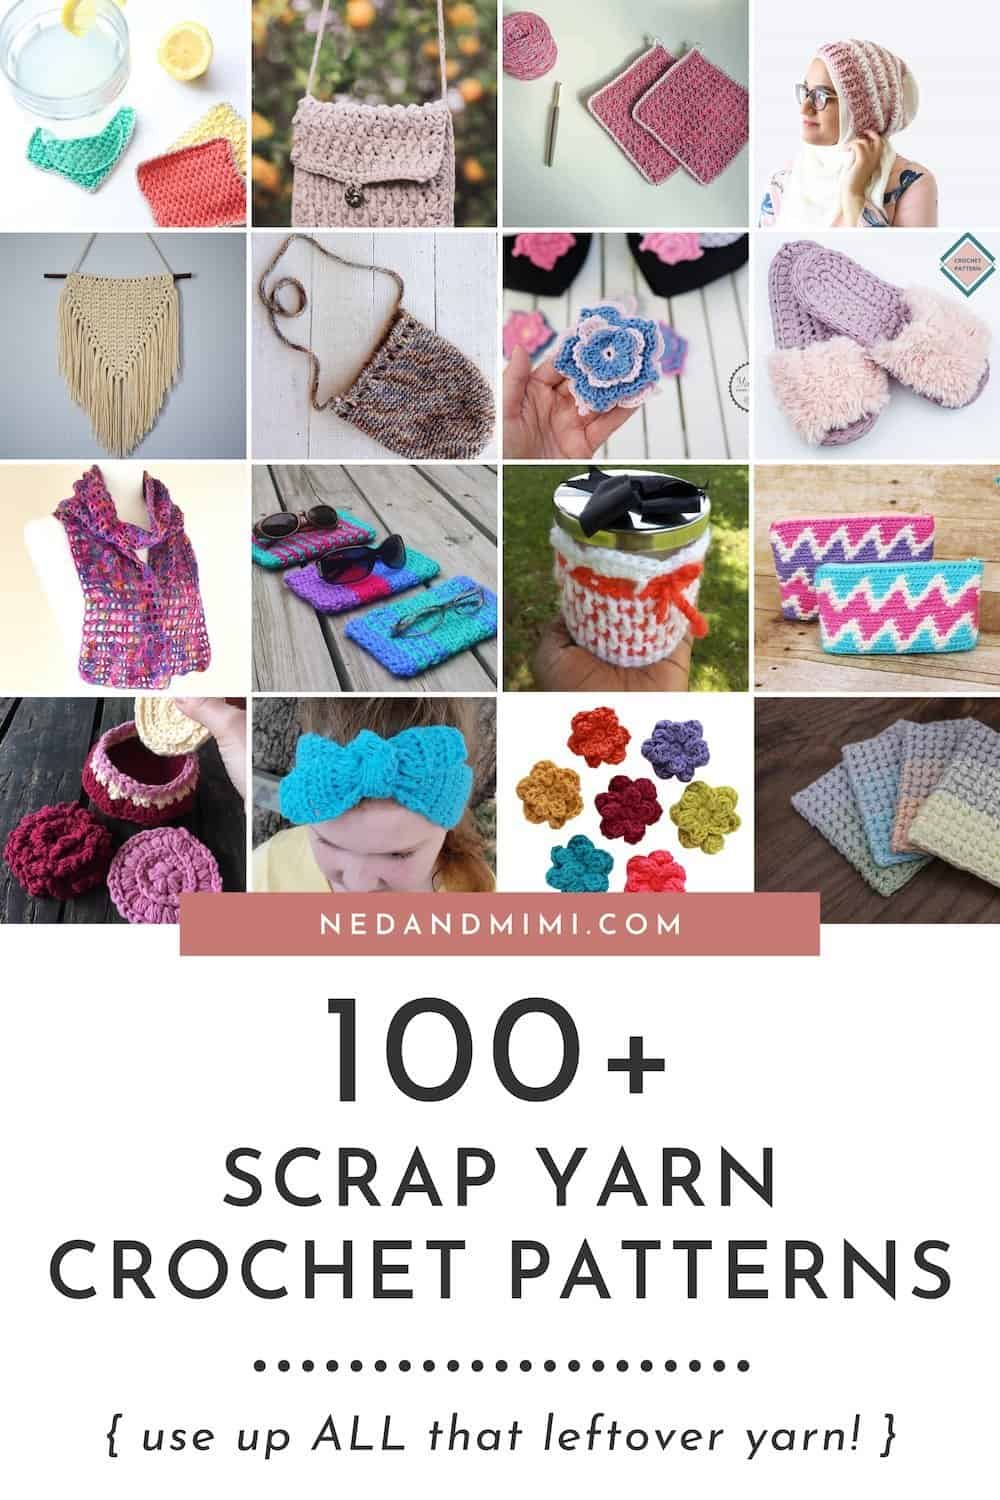 Crochet Patterns for Scrap Yarn